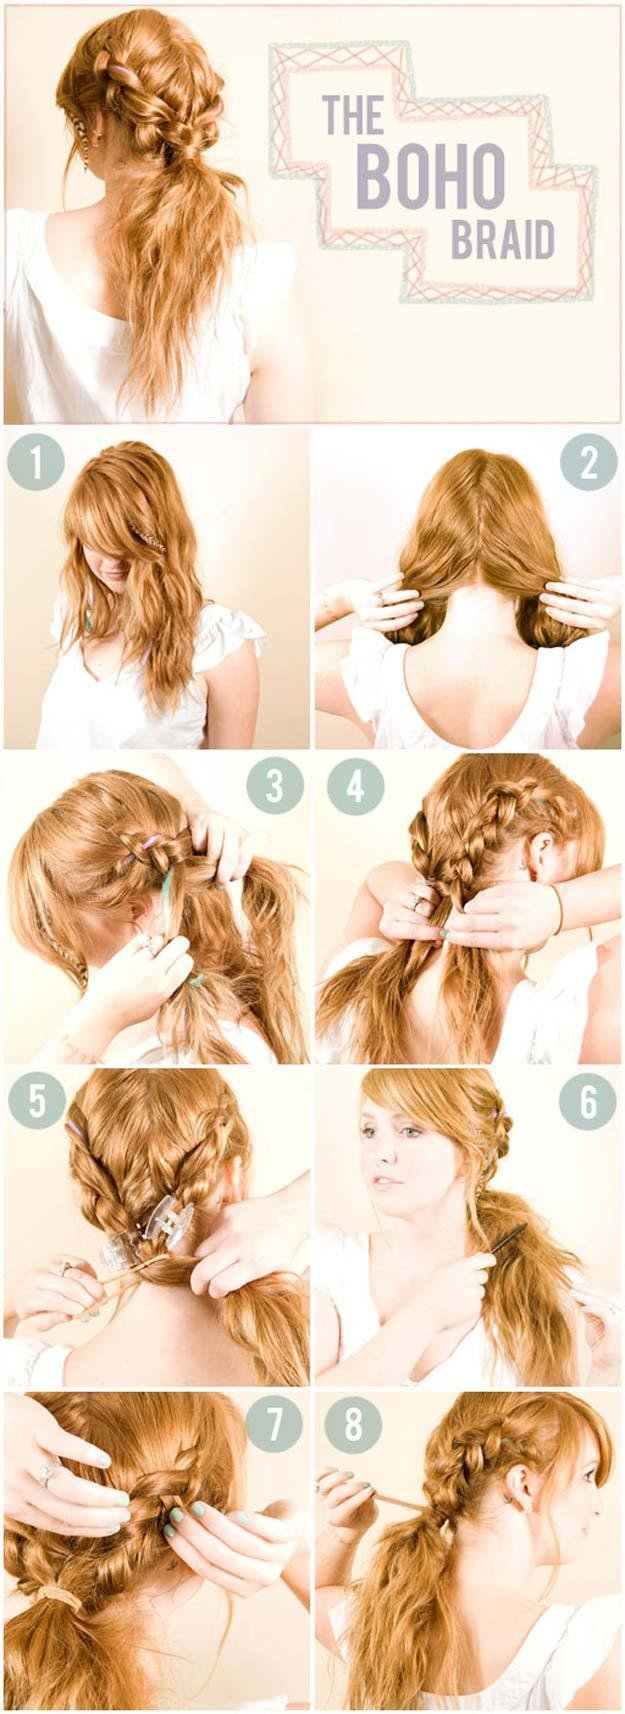 The Best 40 Of The Best Cute Hair Braiding Tutorials Diy Projects Pictures